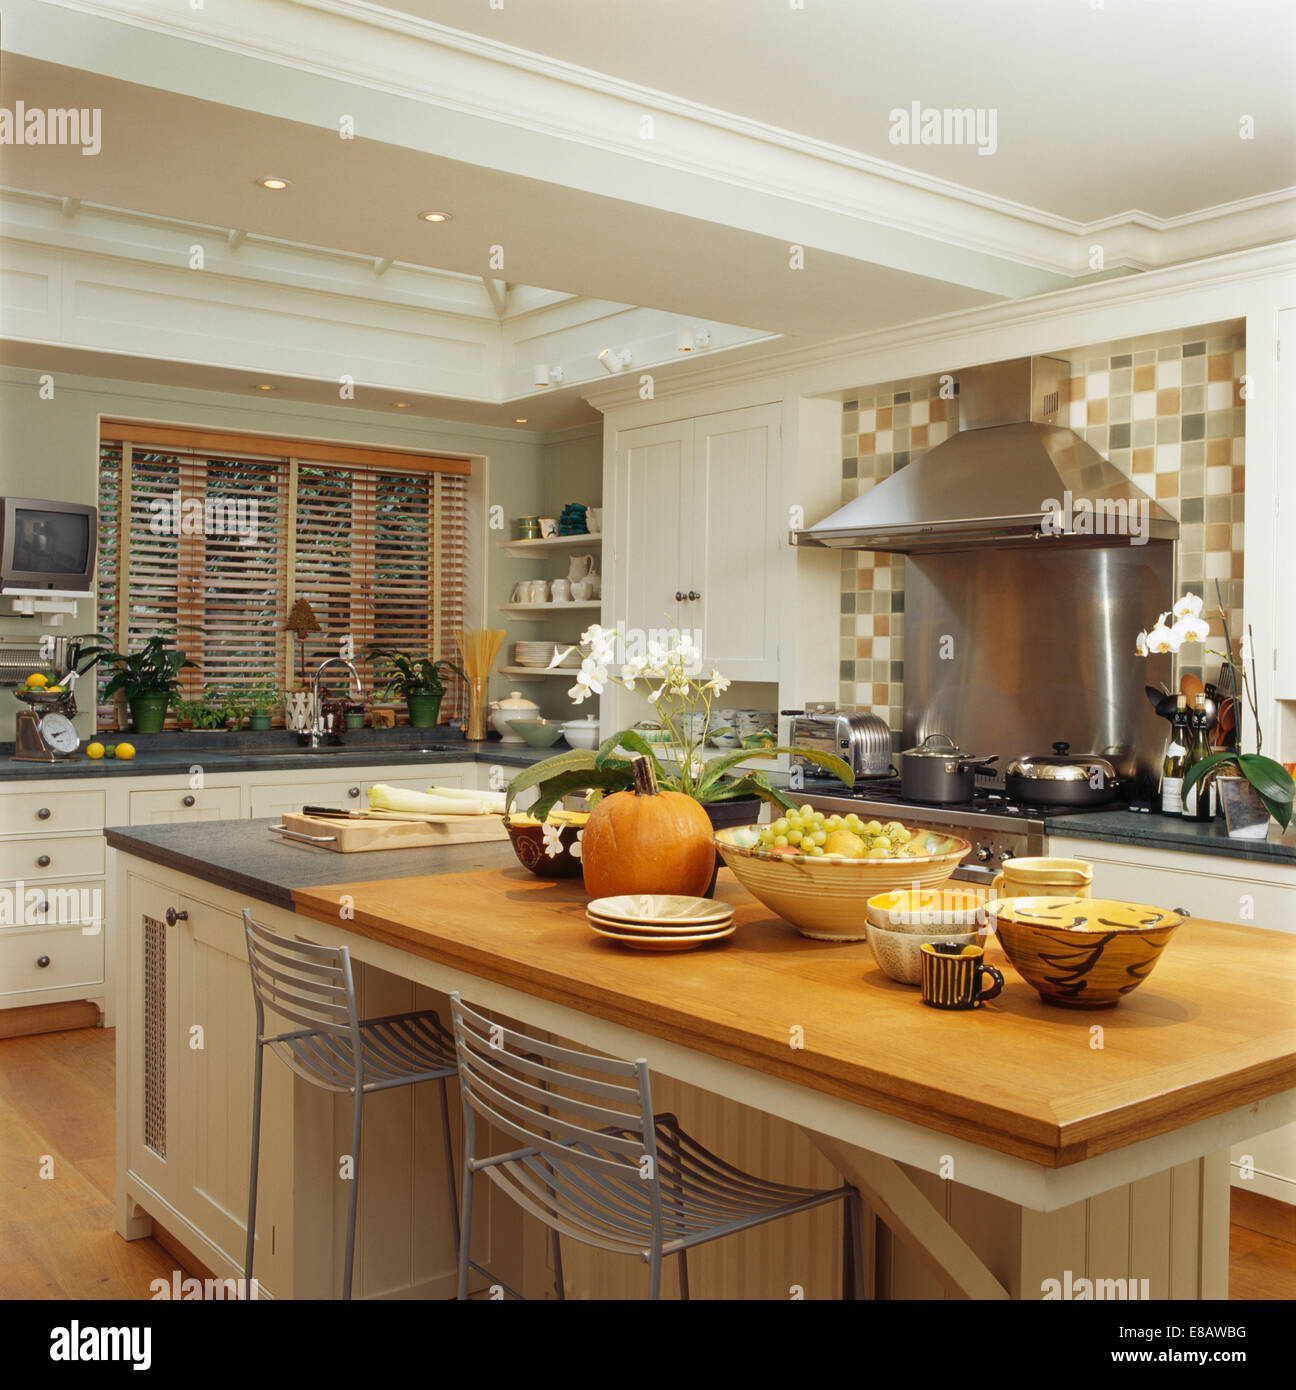 Bowls Of Fruit On Large Island Unit With Breakfast Bar In. Kitchen Garden Volunteer. Kitchen Room Design Pictures. Kitchen Hood Light Replacement. Kitchen Granite Shelves. Design Kitchen Ikea Uk. Kitchen Sink Meaning. Small Kitchen Island With Seating. Brown Sugar Kitchen New Bbq